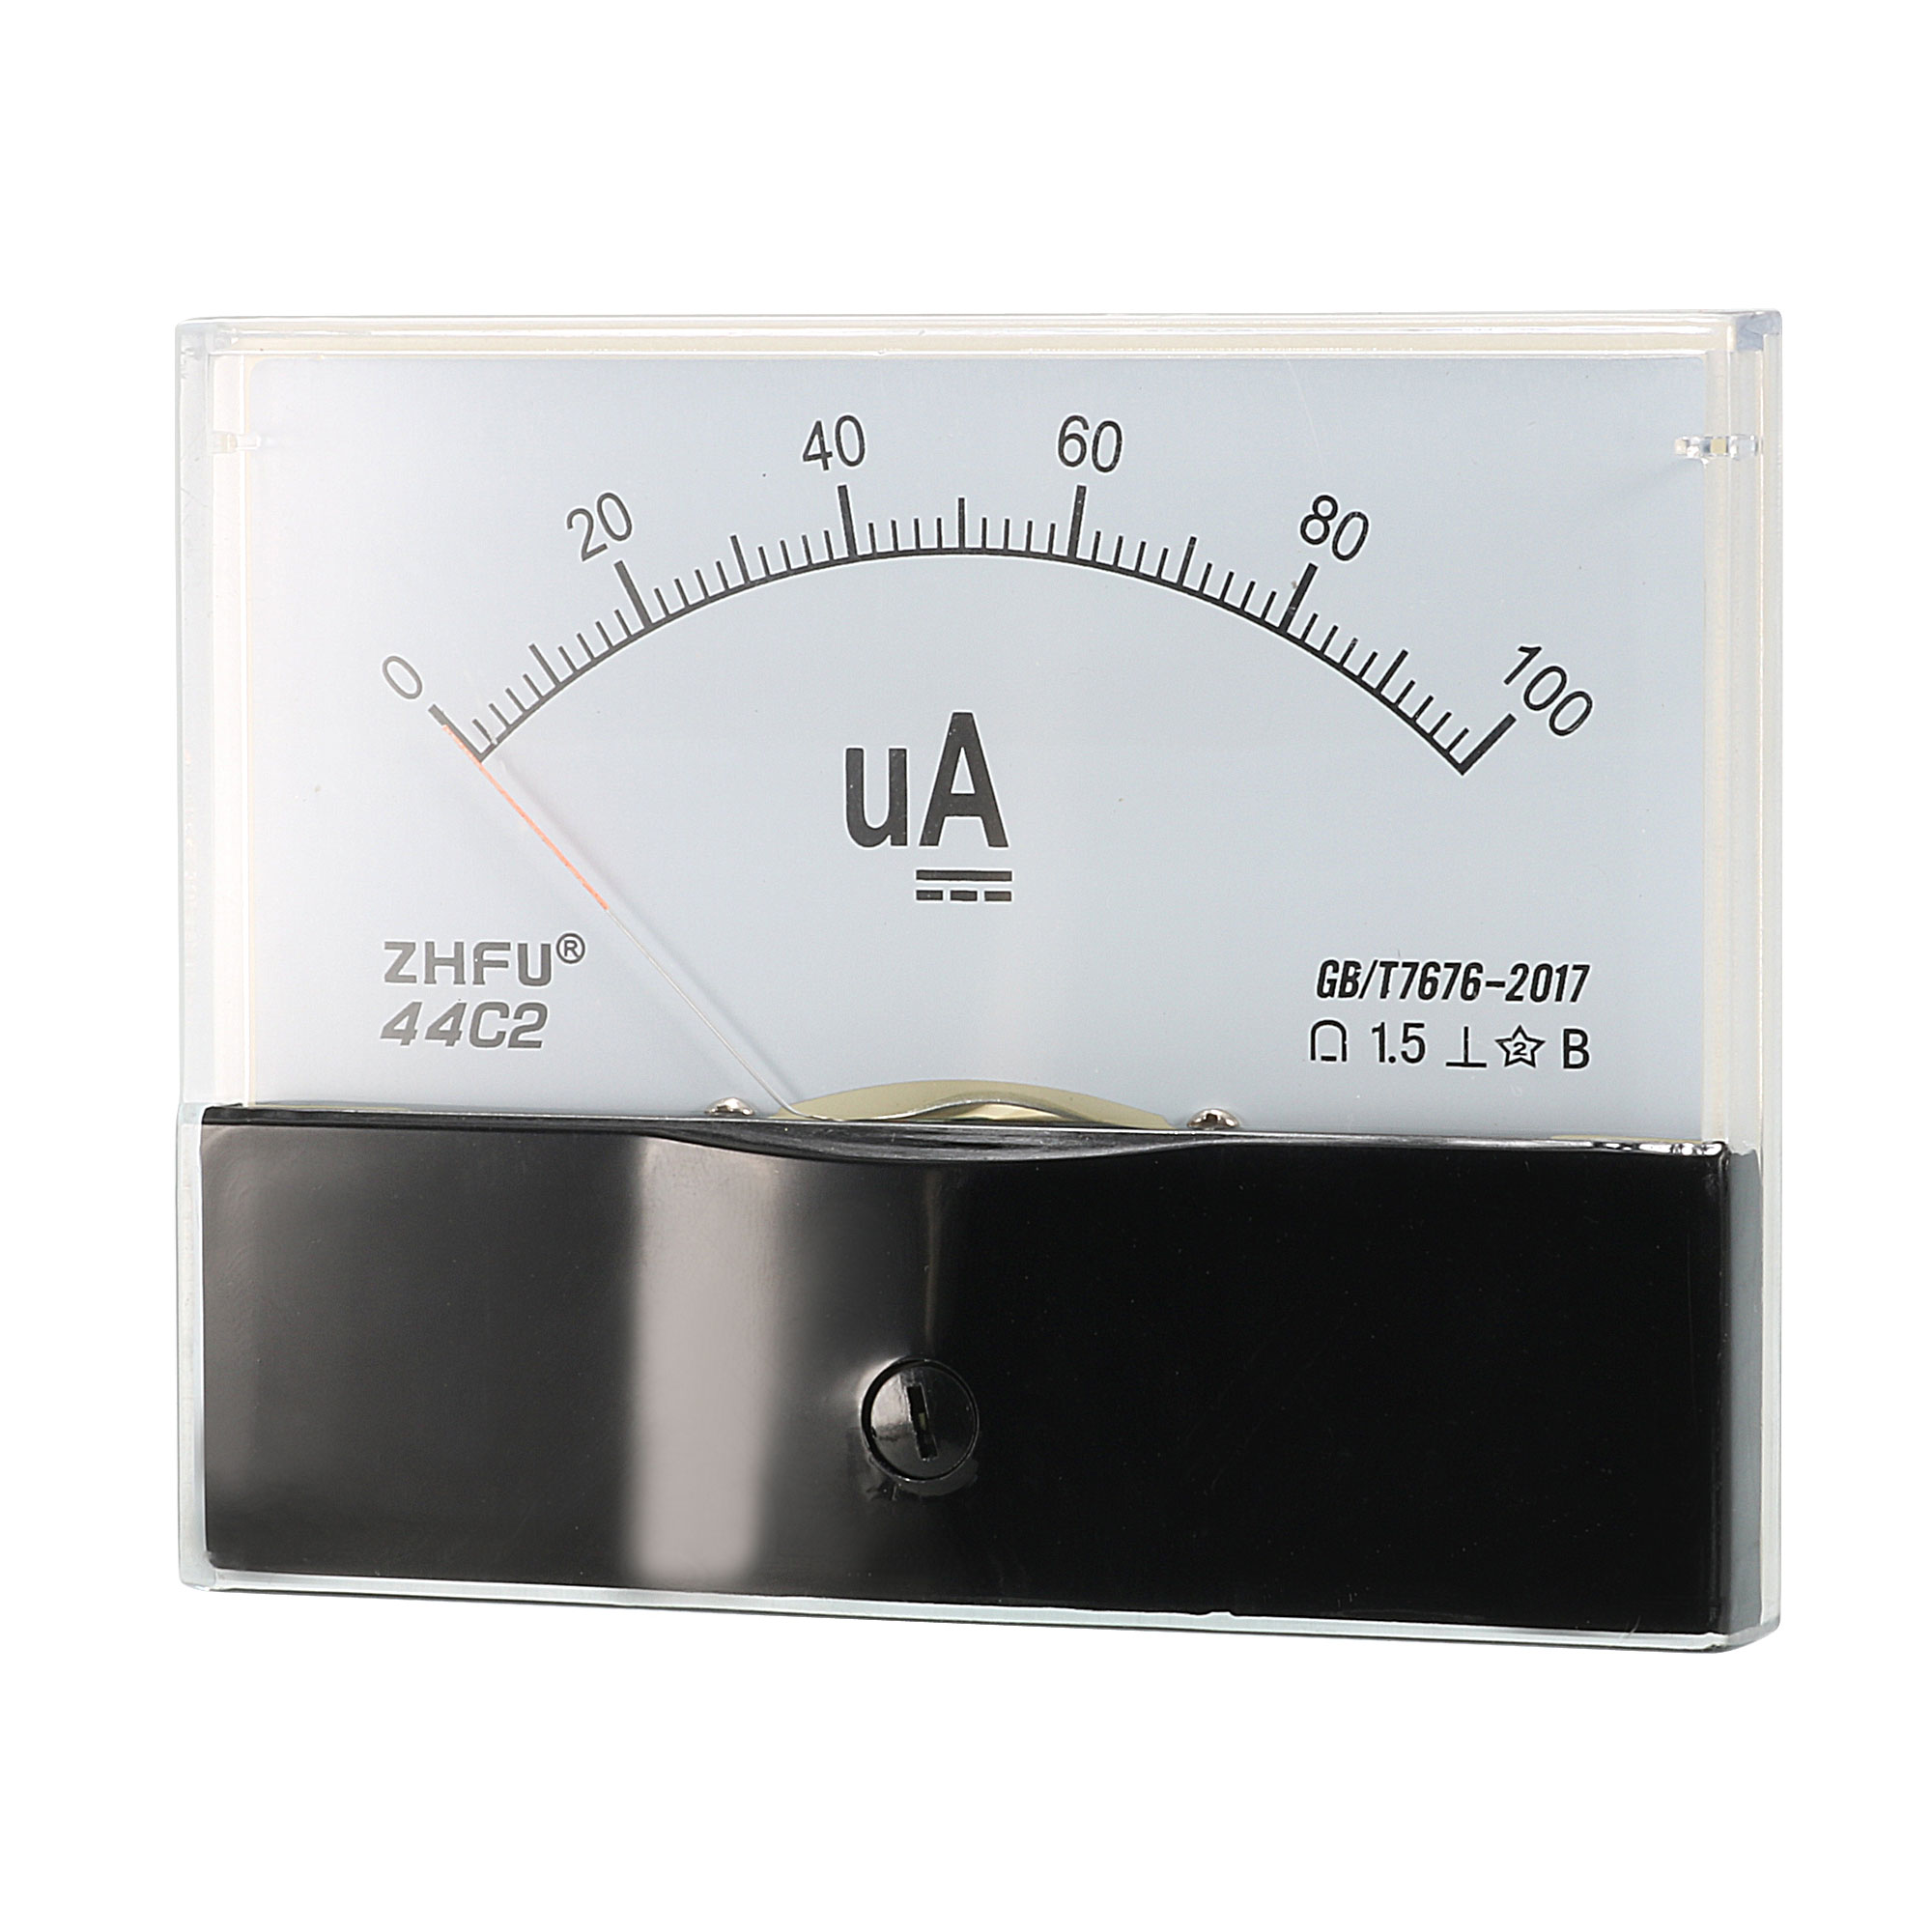 DC 0-100uA Current Analog Panel Meter Amperemeter Gauge Class 1.5